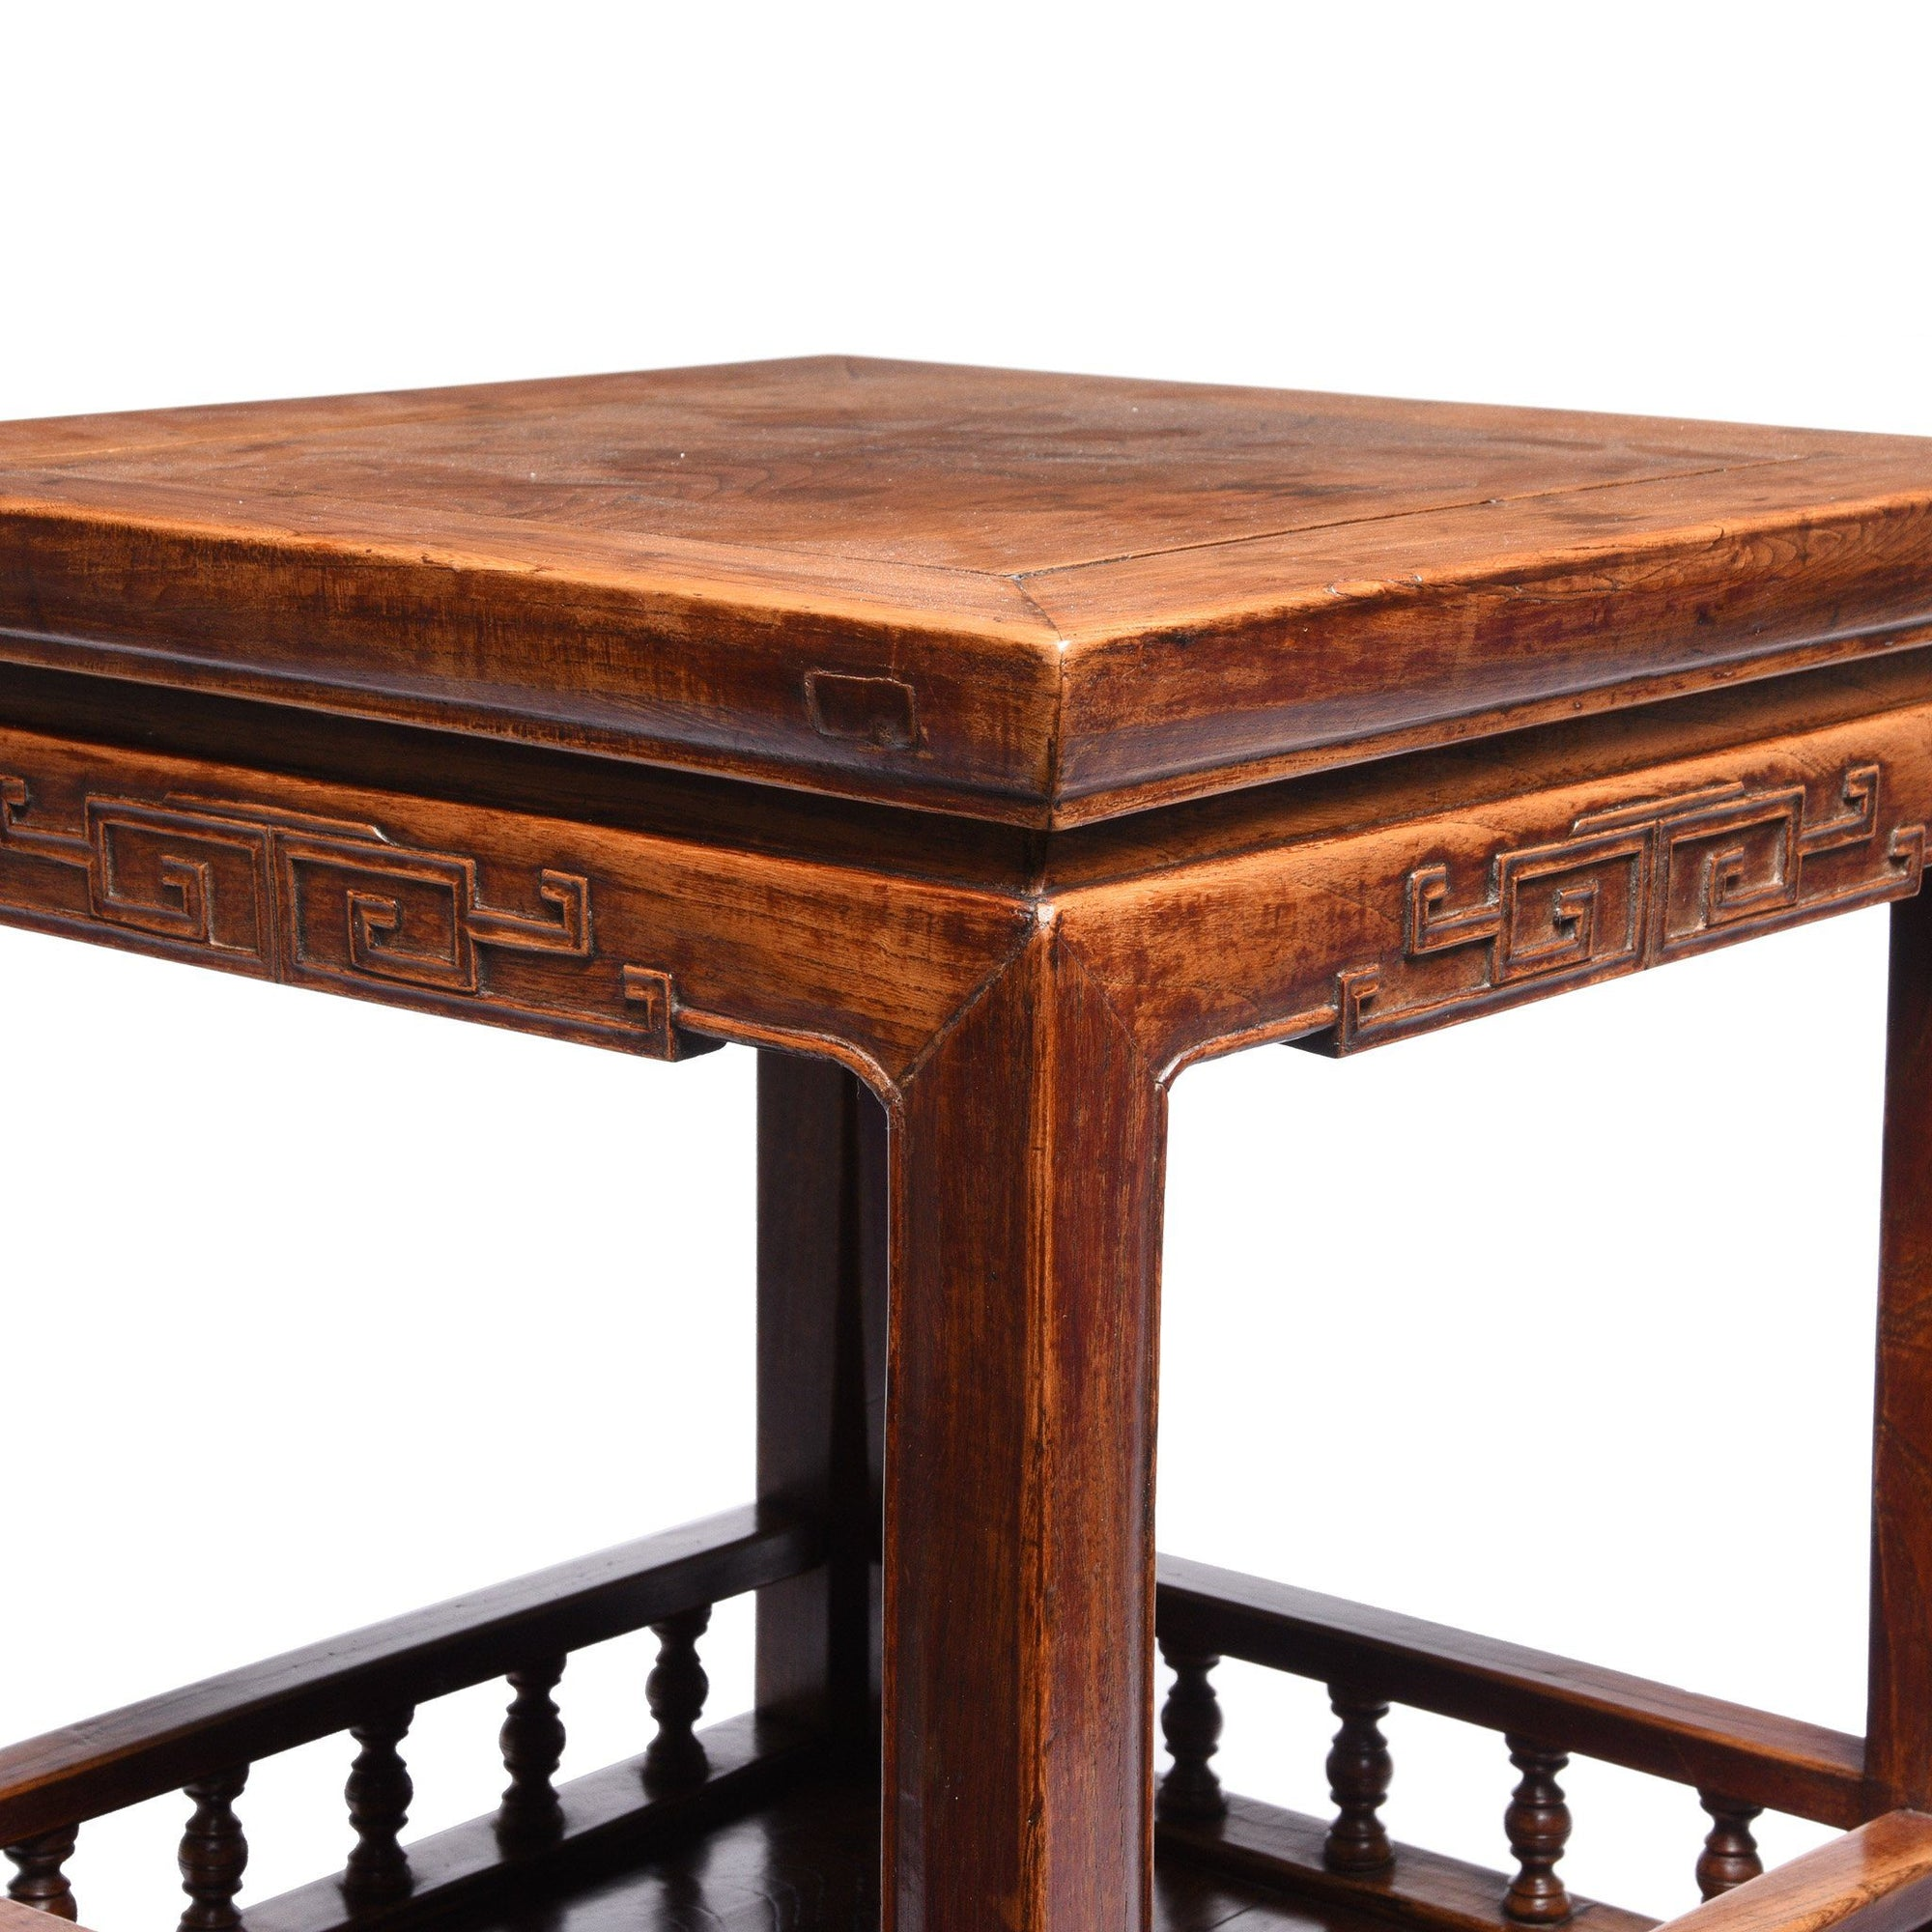 Chinese Flower Stand Occasional Table From Jiangsu - 19thC | Indigo Antiques